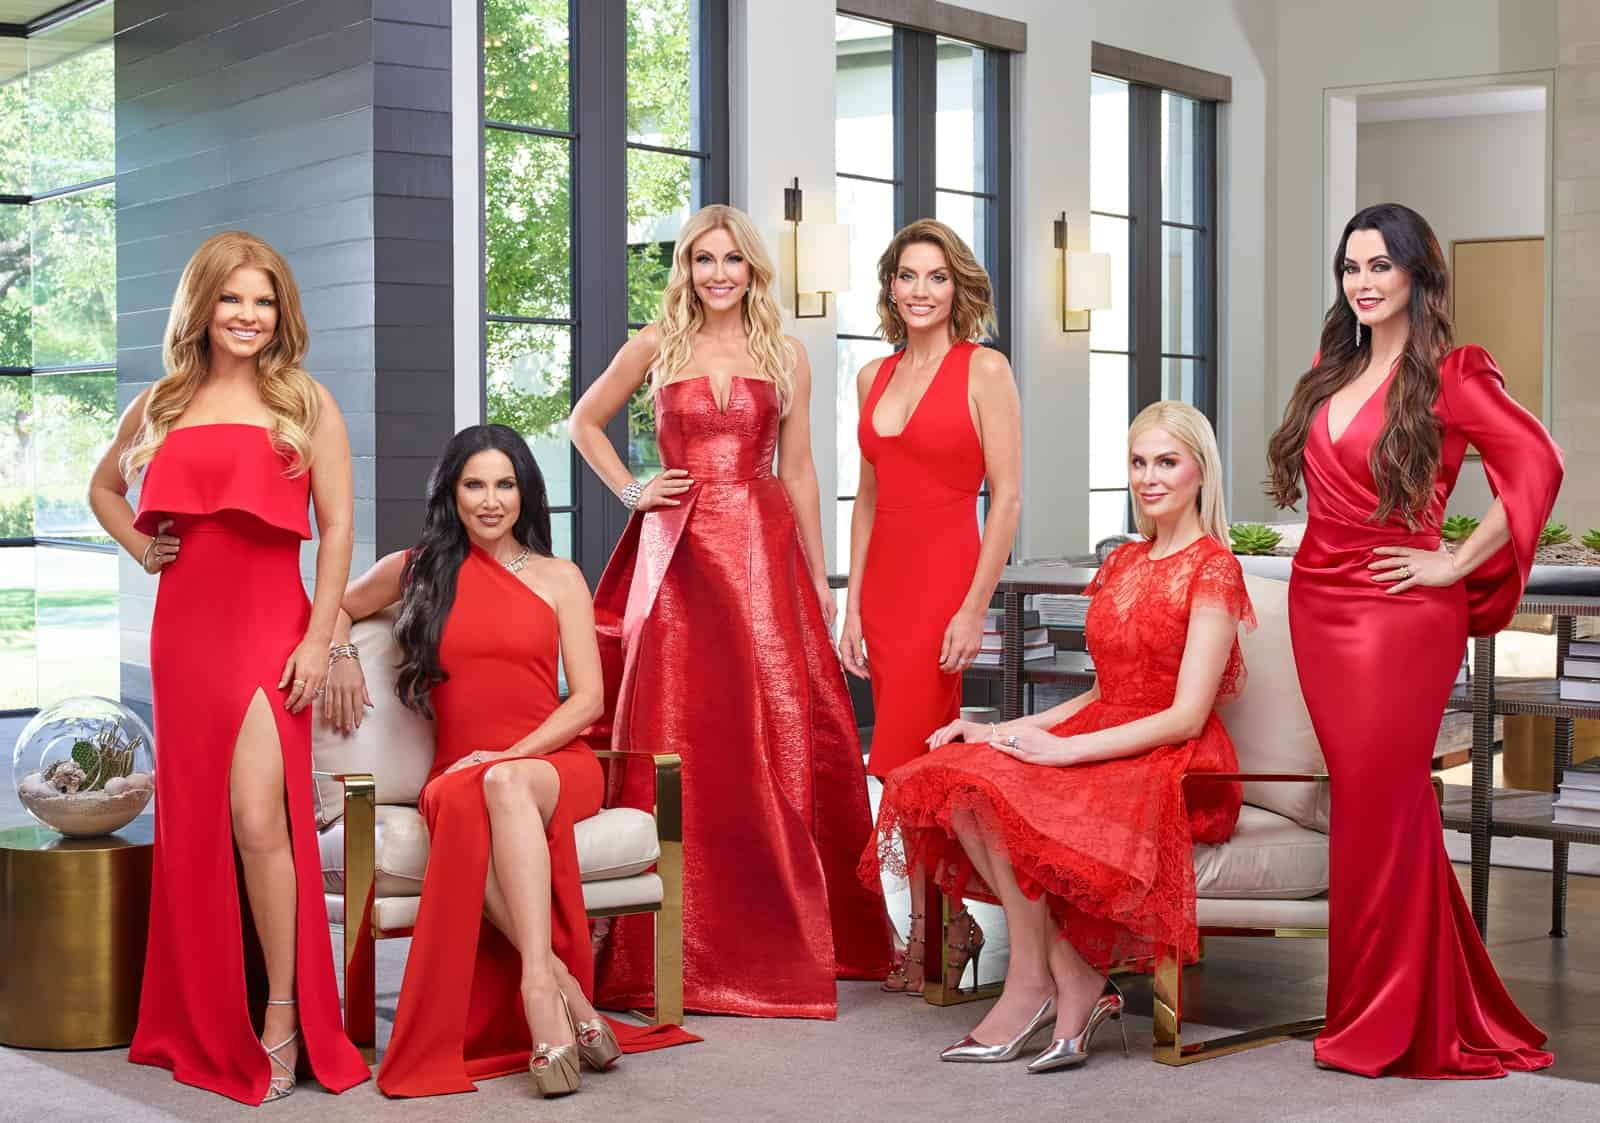 RHOD Season 3 Cast Photo